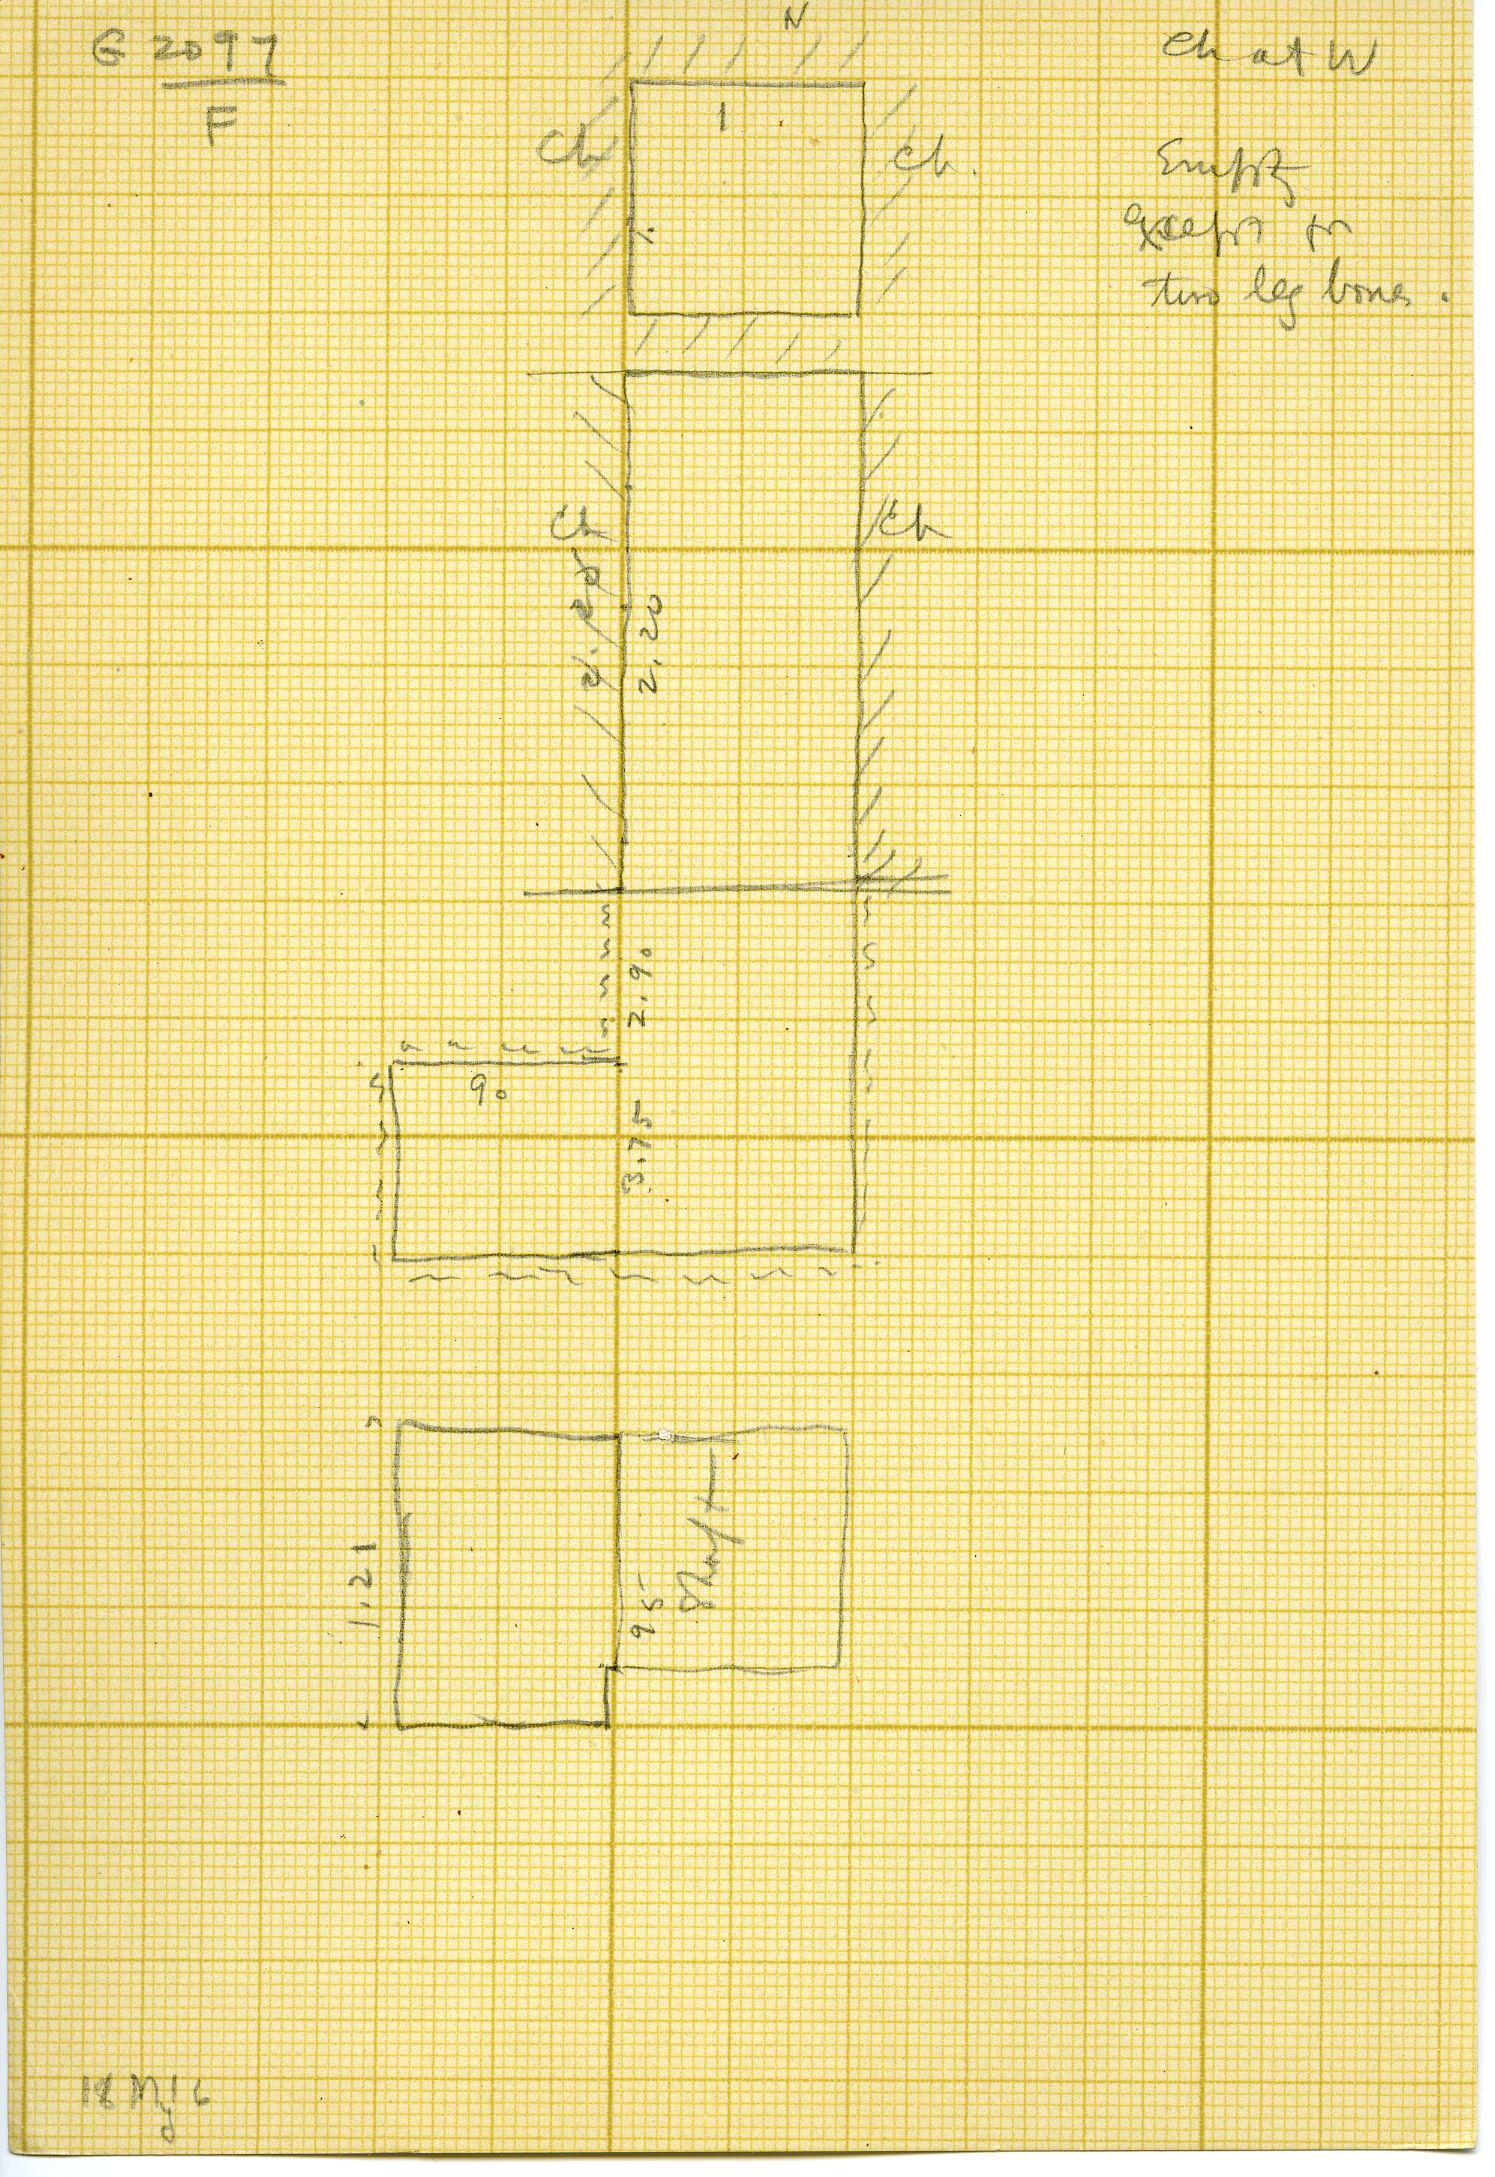 Maps and plans: G 3097, Shaft F